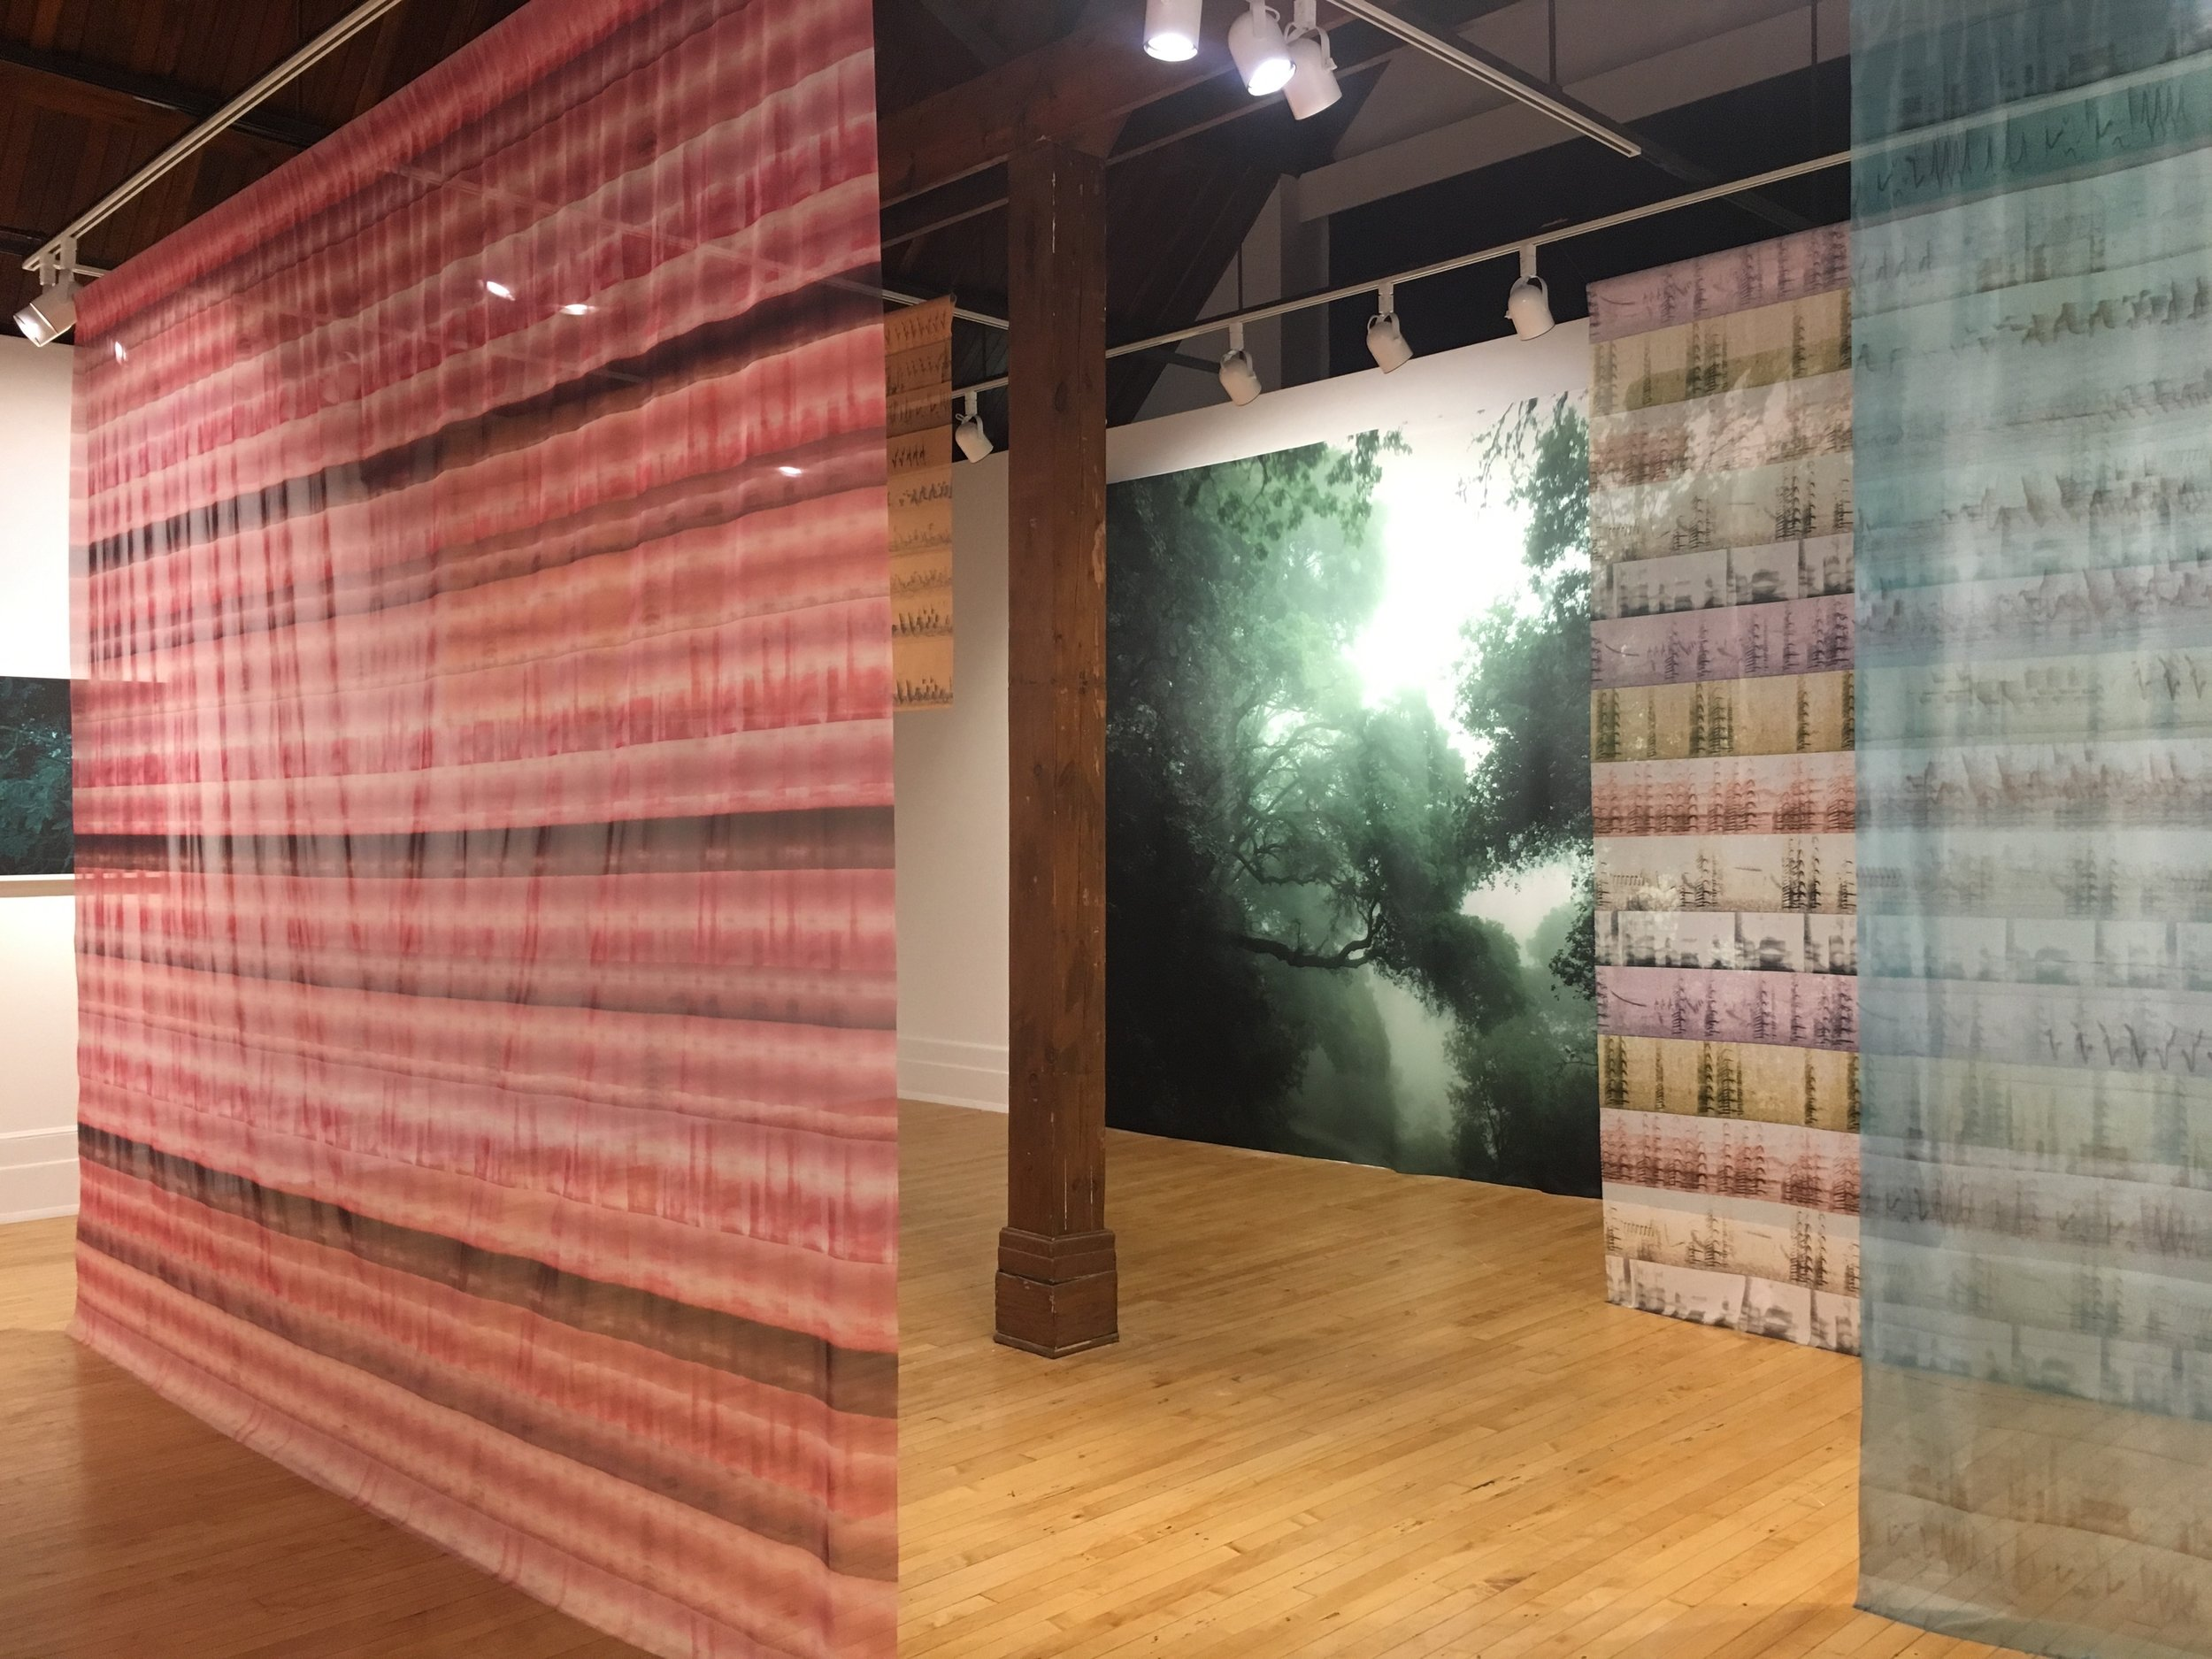 "Sonnenschein Gallery 2018 Lake Forest College, Lake Forest, IL   Last Calls, On Any Given Night …   Solvent prints on silk and shear fabric   Green Daze    (10' x 16')    Indigo Bunting female, calls    (40"" x 12' )    Nene, mating calls    (10' x 72"")    Indigo Bunting male, calls    (10' x 60"")    California Condor, calls    (10' x 12.5')   Audio Installation   On any Given Night: migration season along the Mississippi     Flyway (audio installation) Sound editing by Alex Drosen     Audio File / Loop 20 minutes    Recordings from 1950- 2016 by Arthur A. Allen, Gregory Budney, Martha Fischer, William W.H. Gunn, Justin Hite, Peter Keane, Geoffrey A. Keller, Bob McGuire, Steven R.Pantle, Thomas G. Sandler, and Gerrit Vyn  All Courtesy The Cornell Lab of Ornithology"